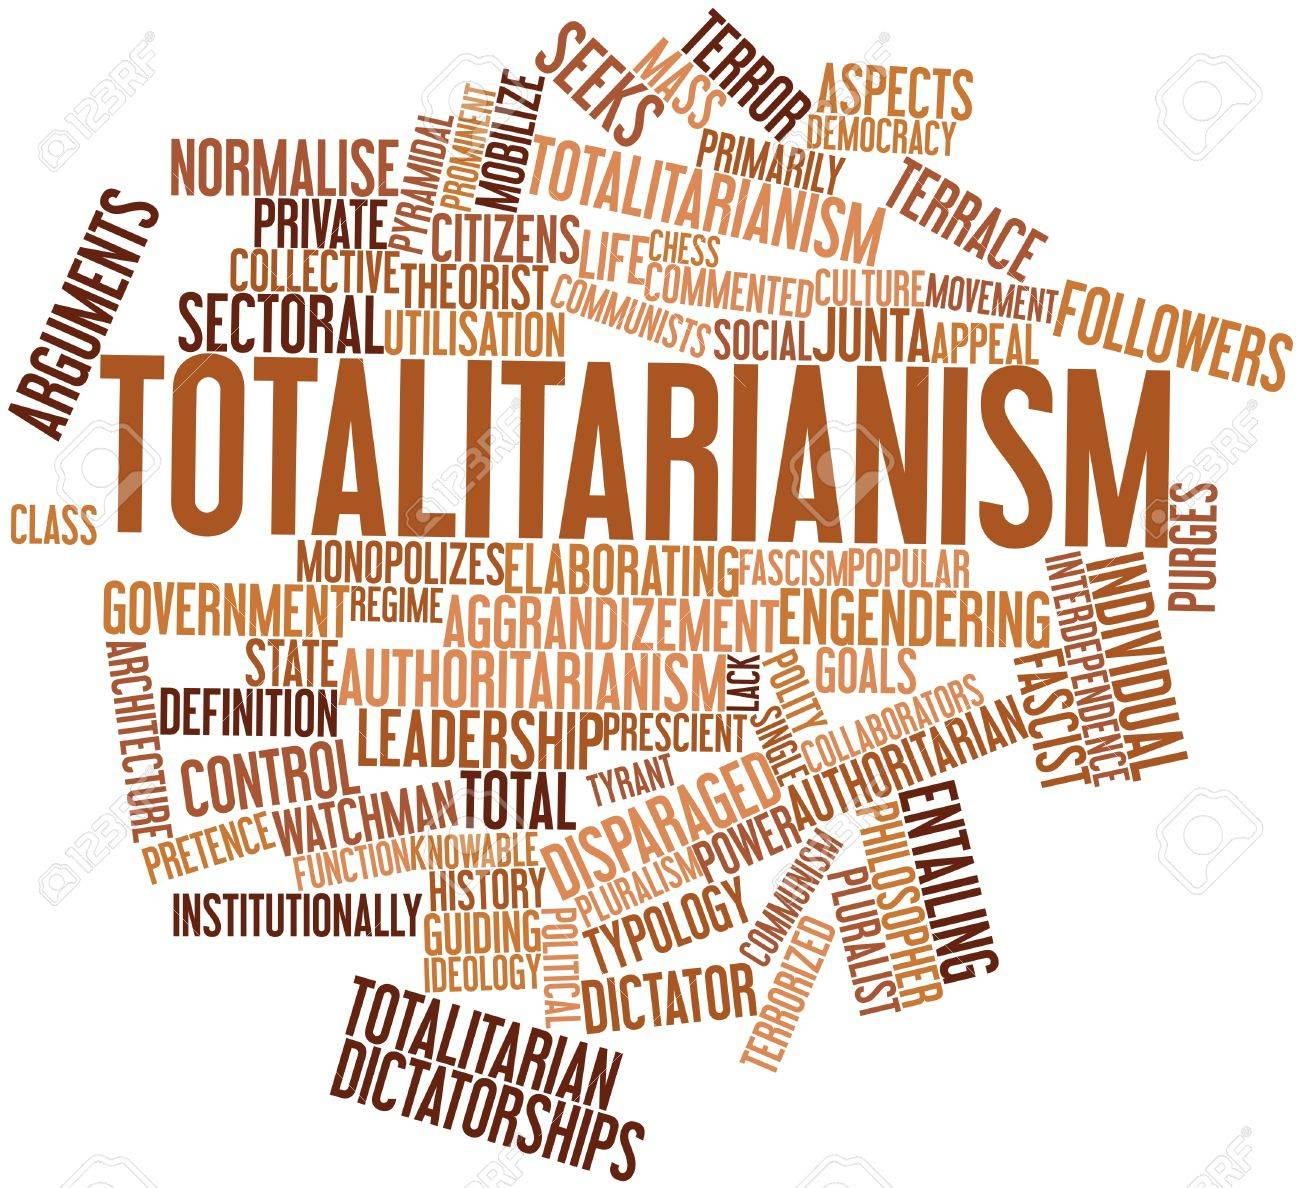 images totalitarianism definition source